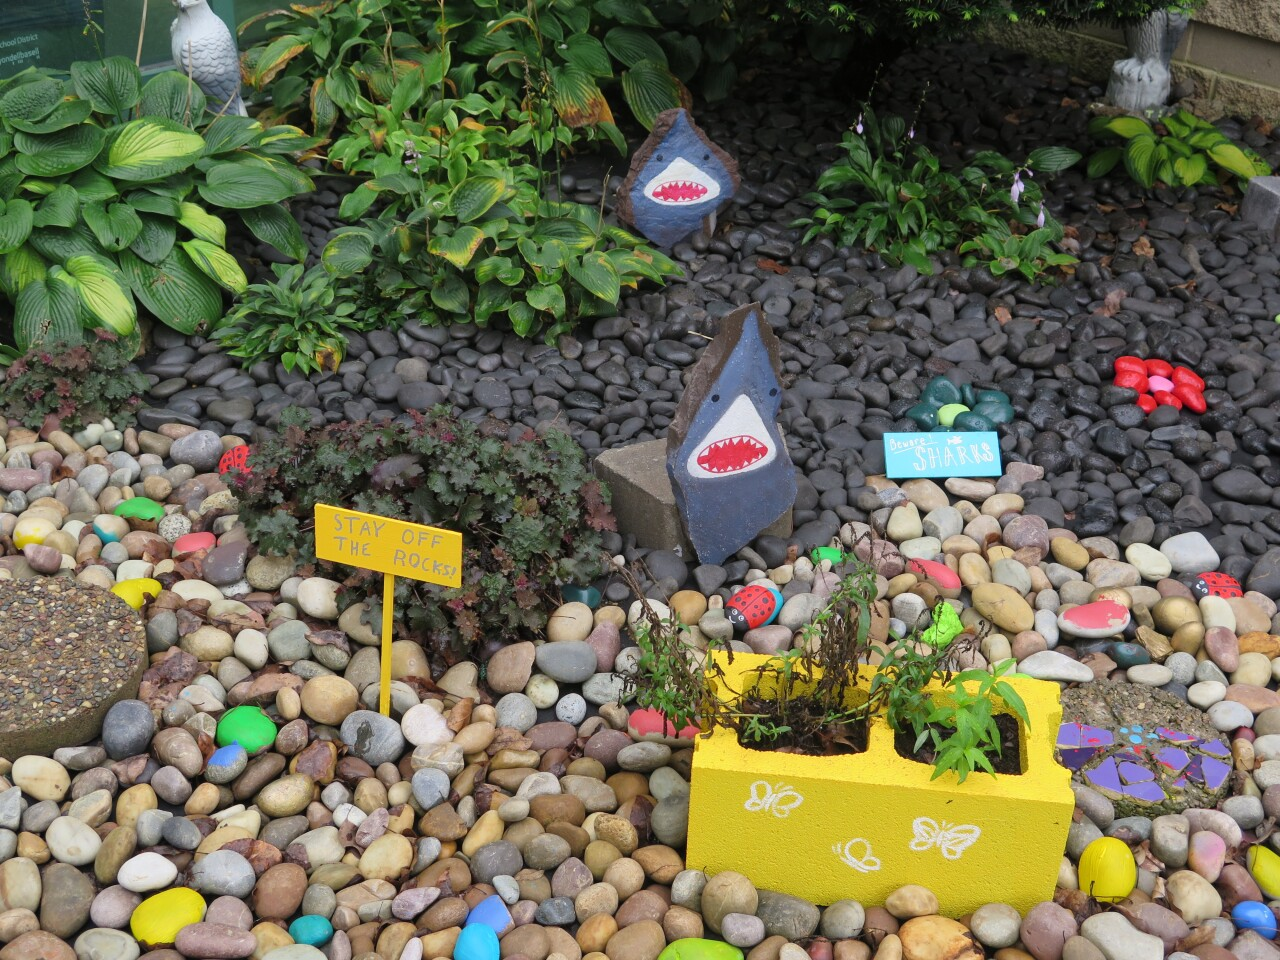 The MECC Moves rock garden includes rocks painted like sharks to warn students not to play there.